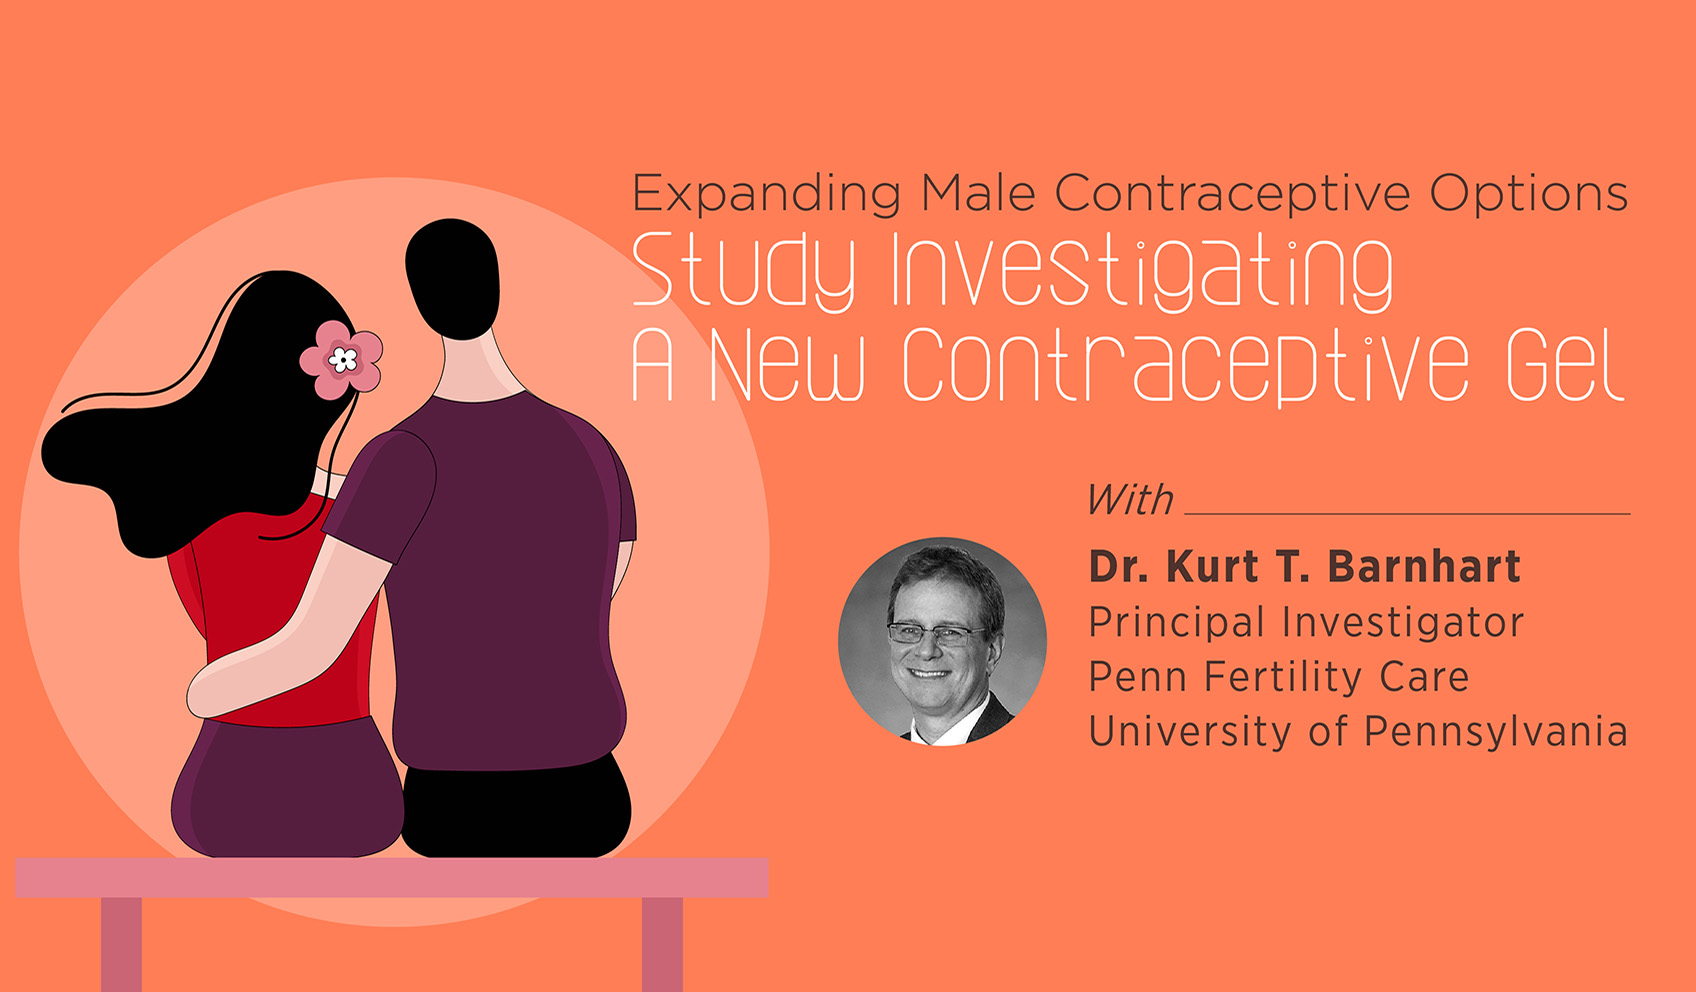 Expanding Male Contraceptive Options: Study Investigating A New Contraceptive Gel